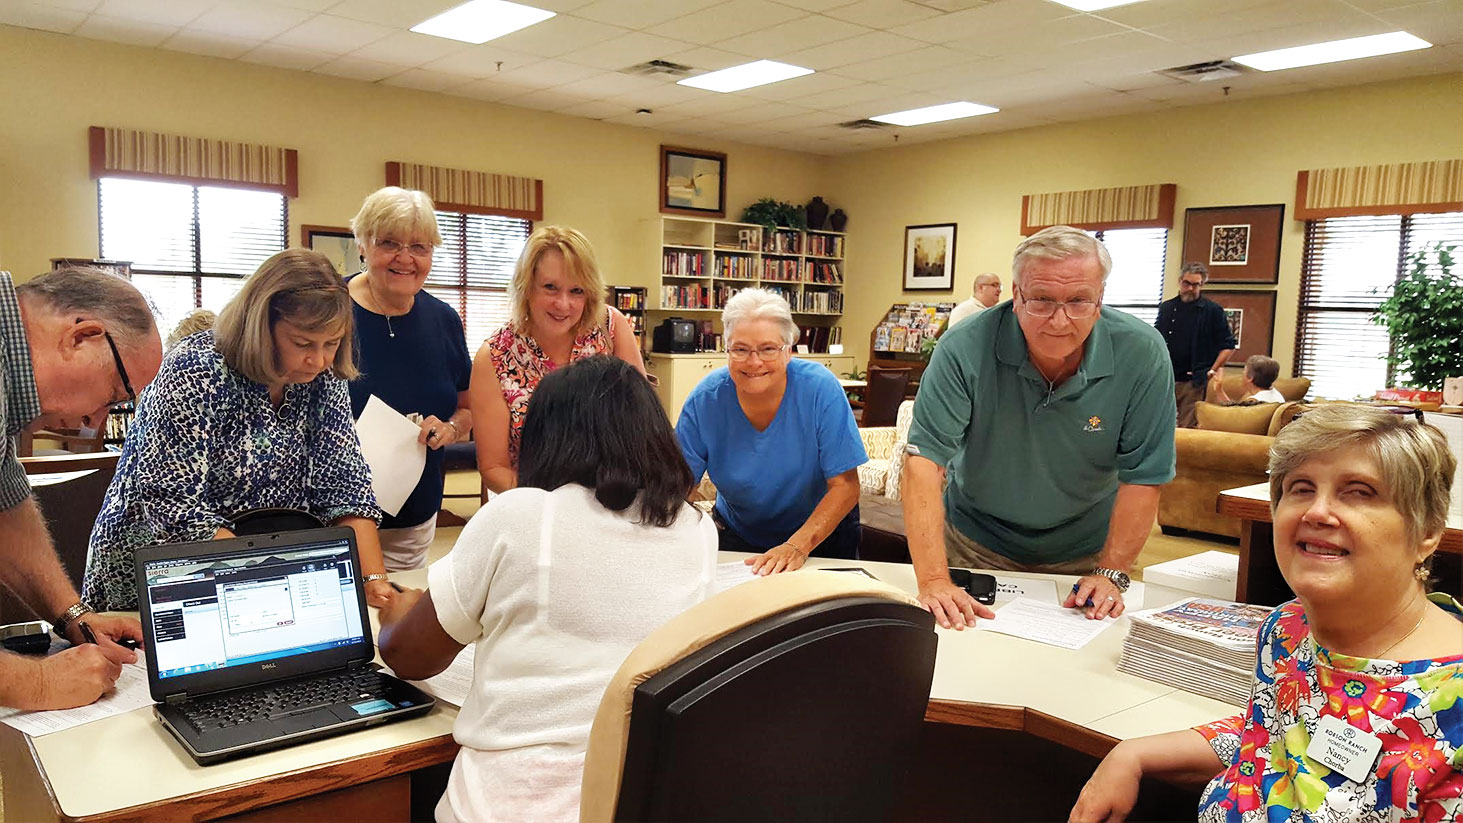 What a line for registering or renewing Denton library cards! Library board member Nancy Chorba manned our local circulation desk while the city library clerk handled the paper work.